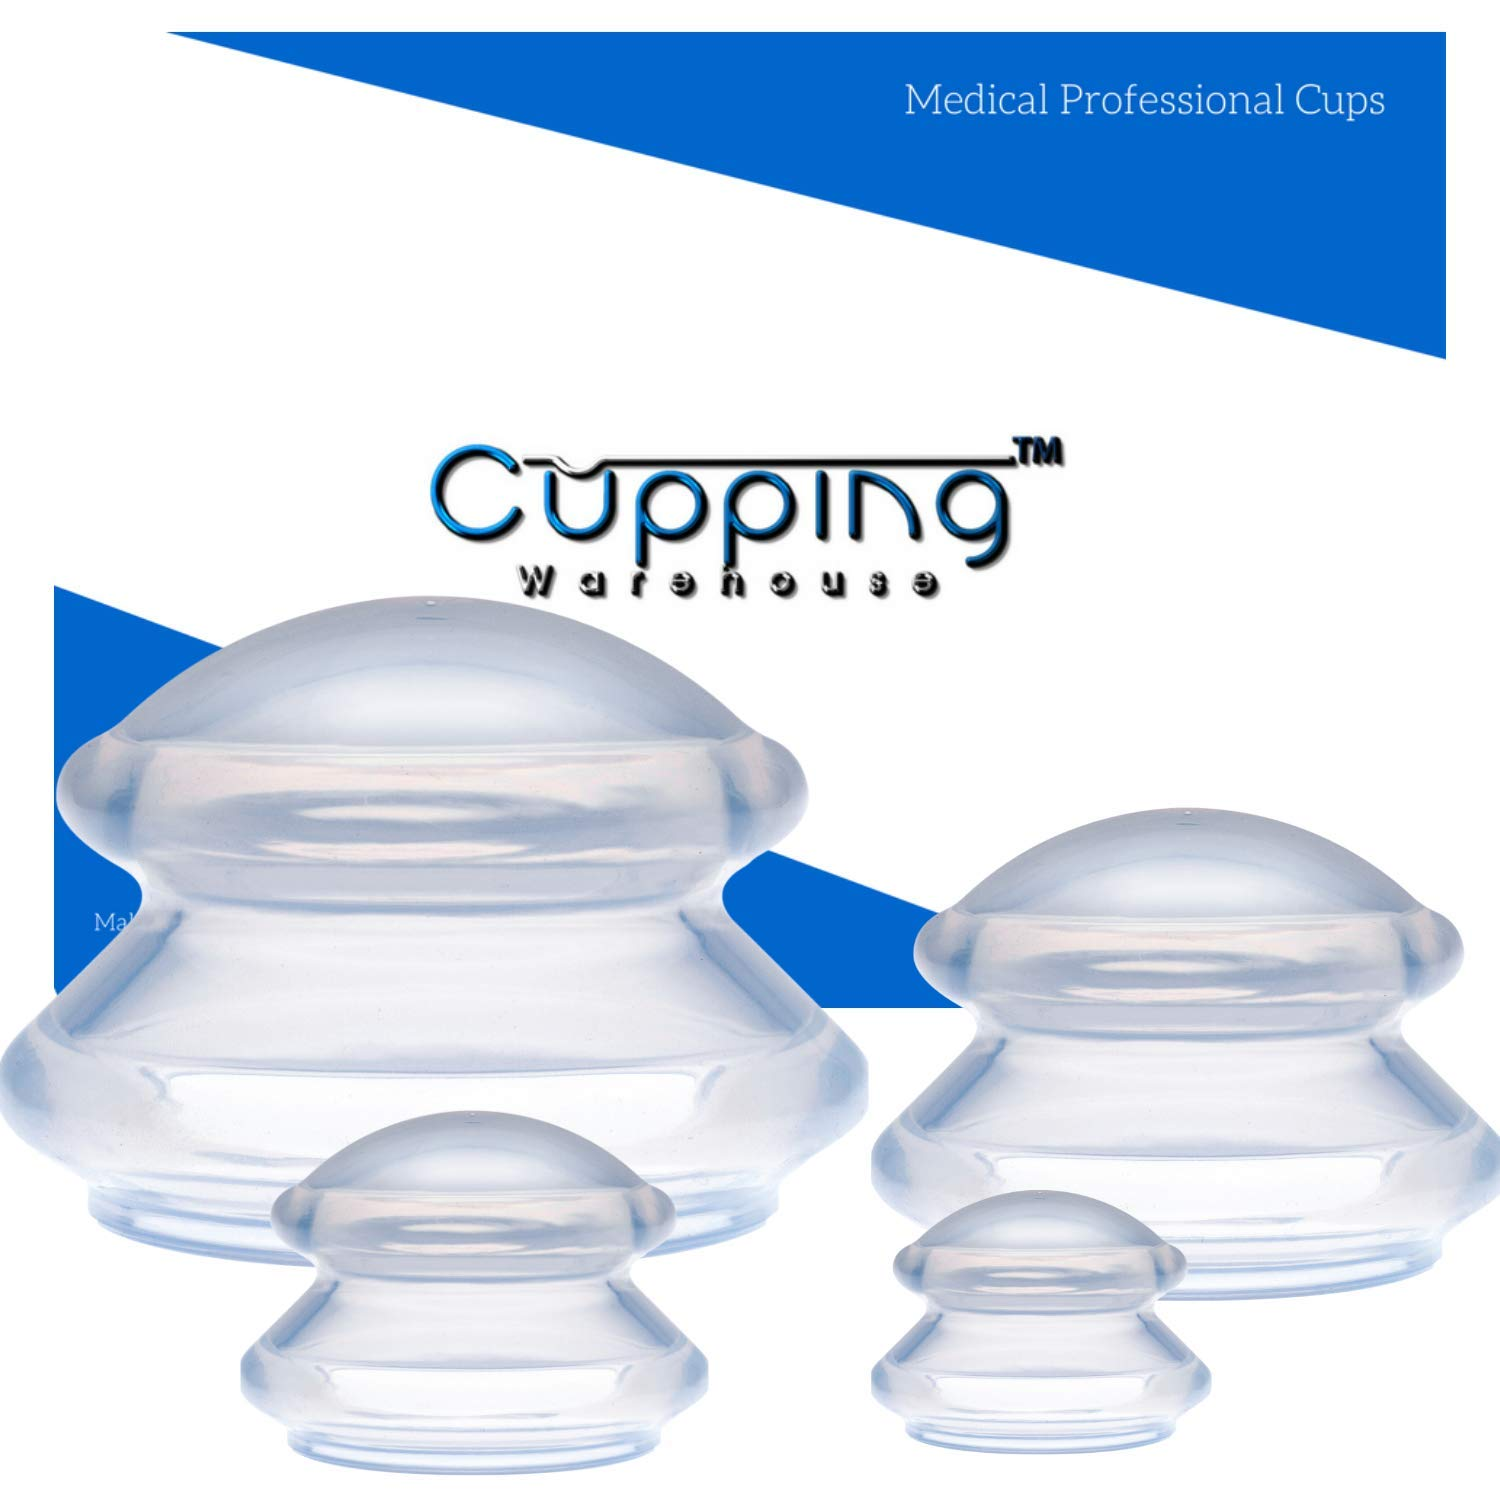 Cupping Warehouse Supreme 4 DEEP PRO 6065 Sturdy Harder Rigid Cups for Advanced Treatments - Professional Cupping Therapy Sets Chinese Silicone Massage Suction Cups for Joint, Pain, Muscles, Fascia